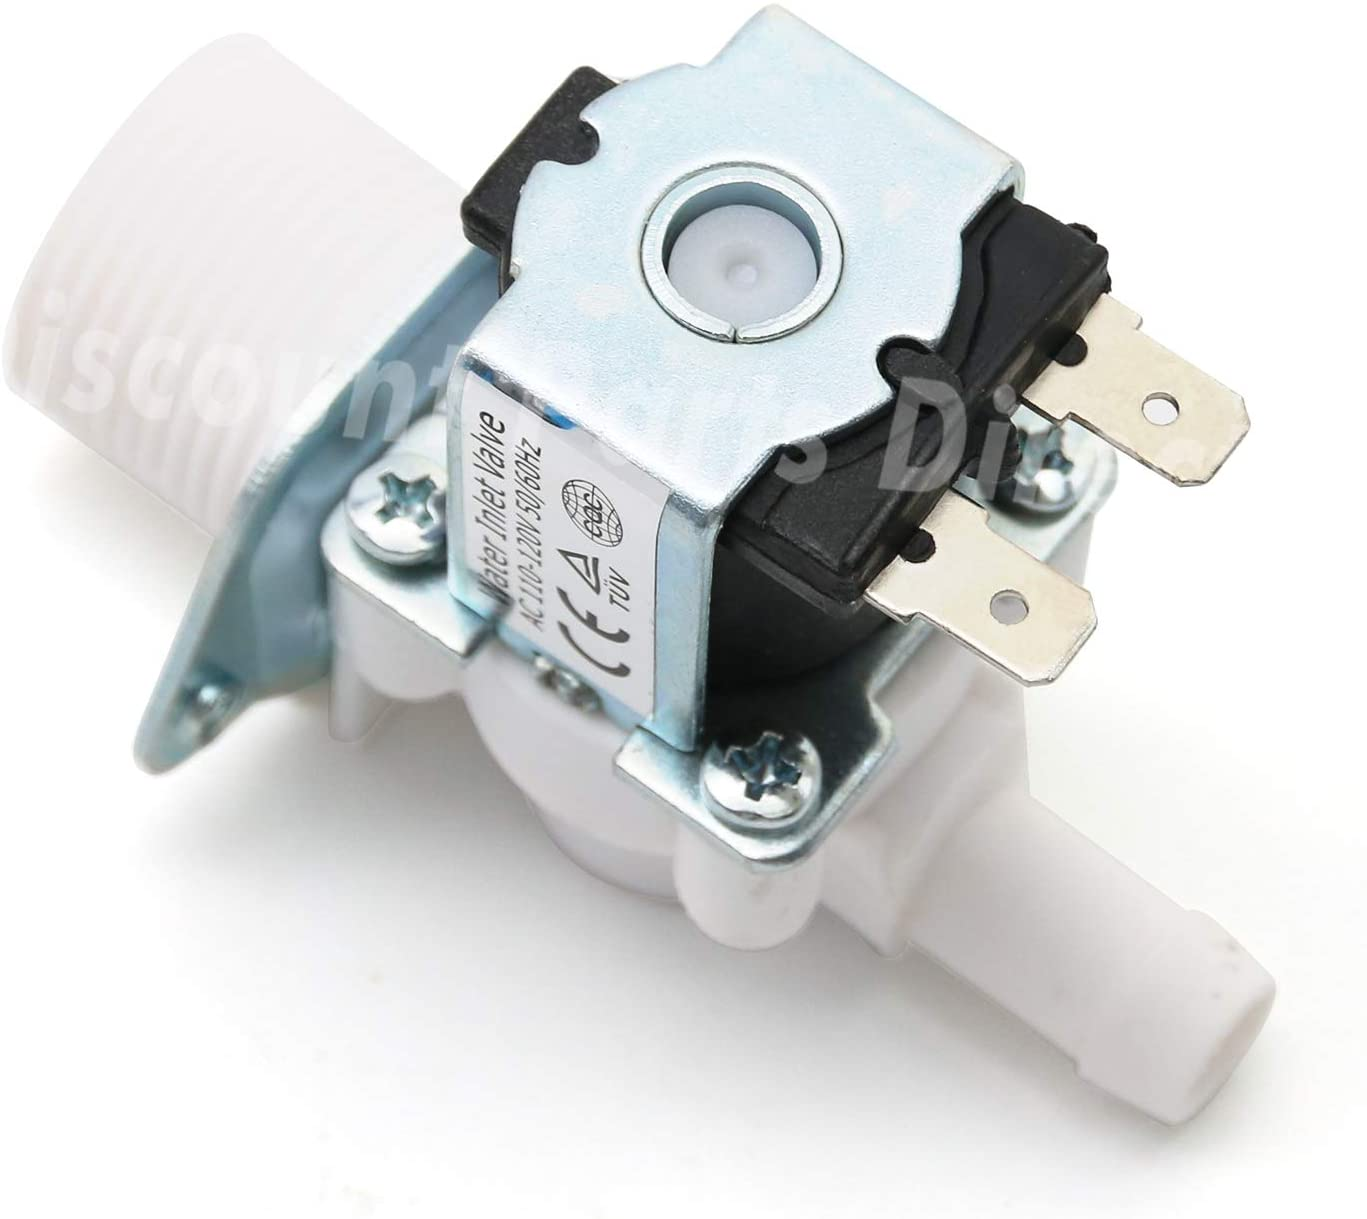 5220FR2006H Washer Hot Water Inlet Valve for LG Kenmore Sears Washers, Replaces: PS3527427 1268123, 5220FR2006H, 5220FR2006L, 5220FR2006Q, AP4441935 By Discount Parts Direct